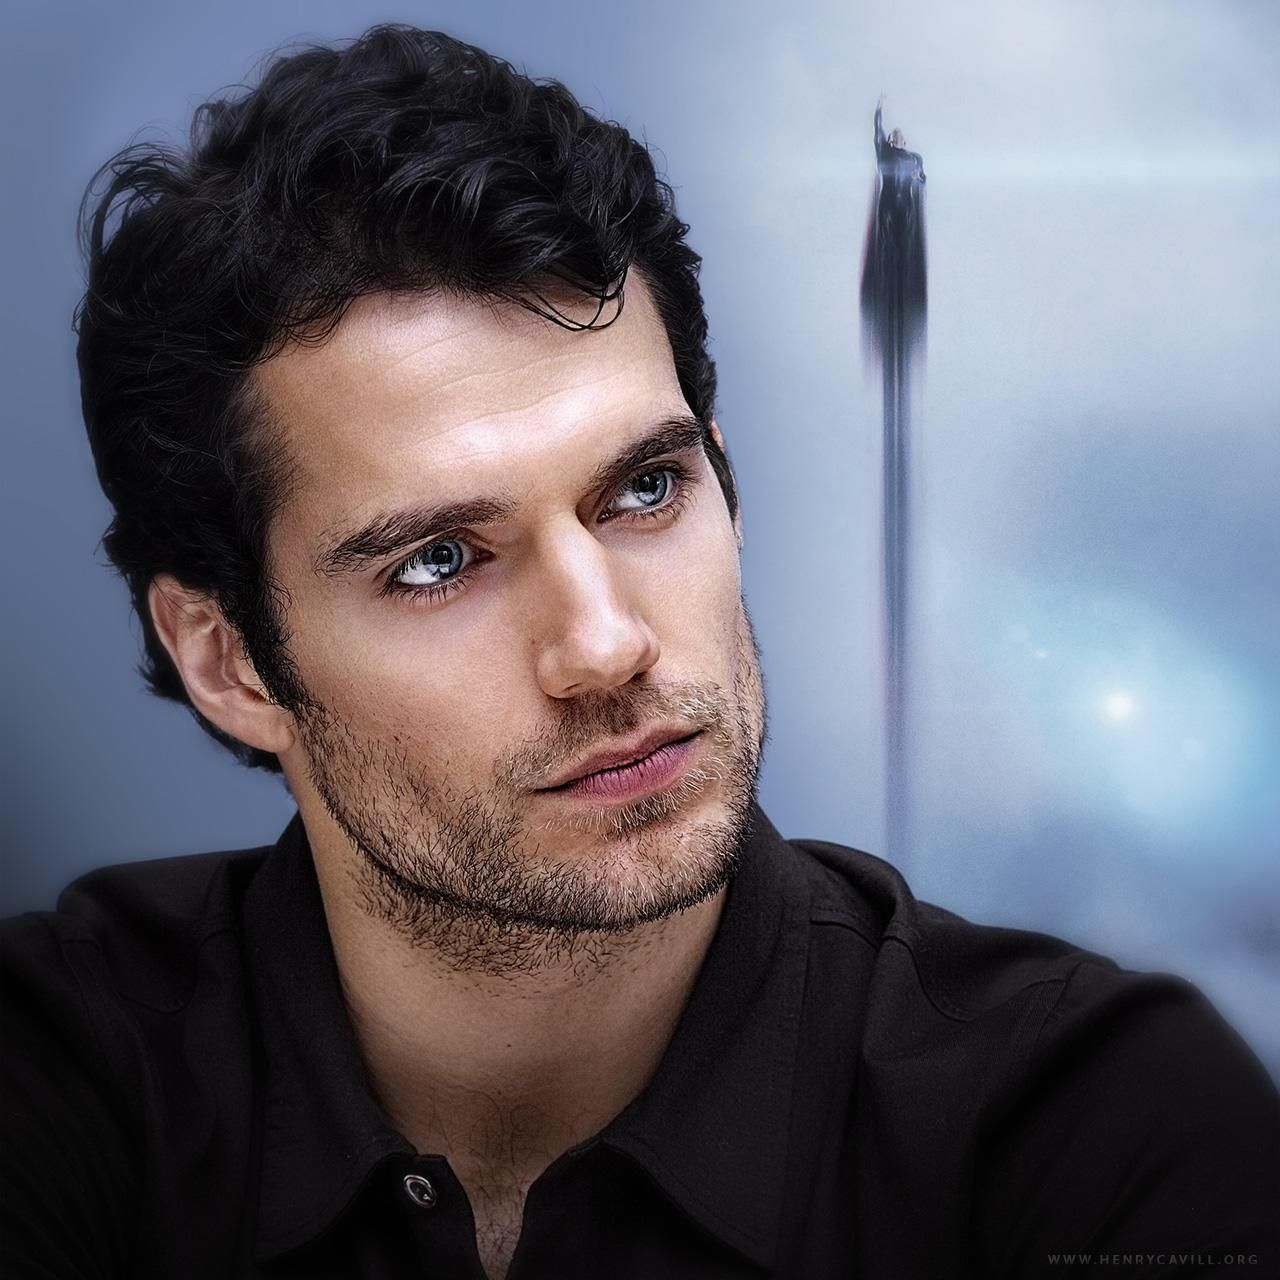 Henry Cavill 52 Amazing Facts About The Actor List Useless Daily The Amazing Facts News Amp Henry Cavill Black Hair Blue Eyes Blue Eyed Men